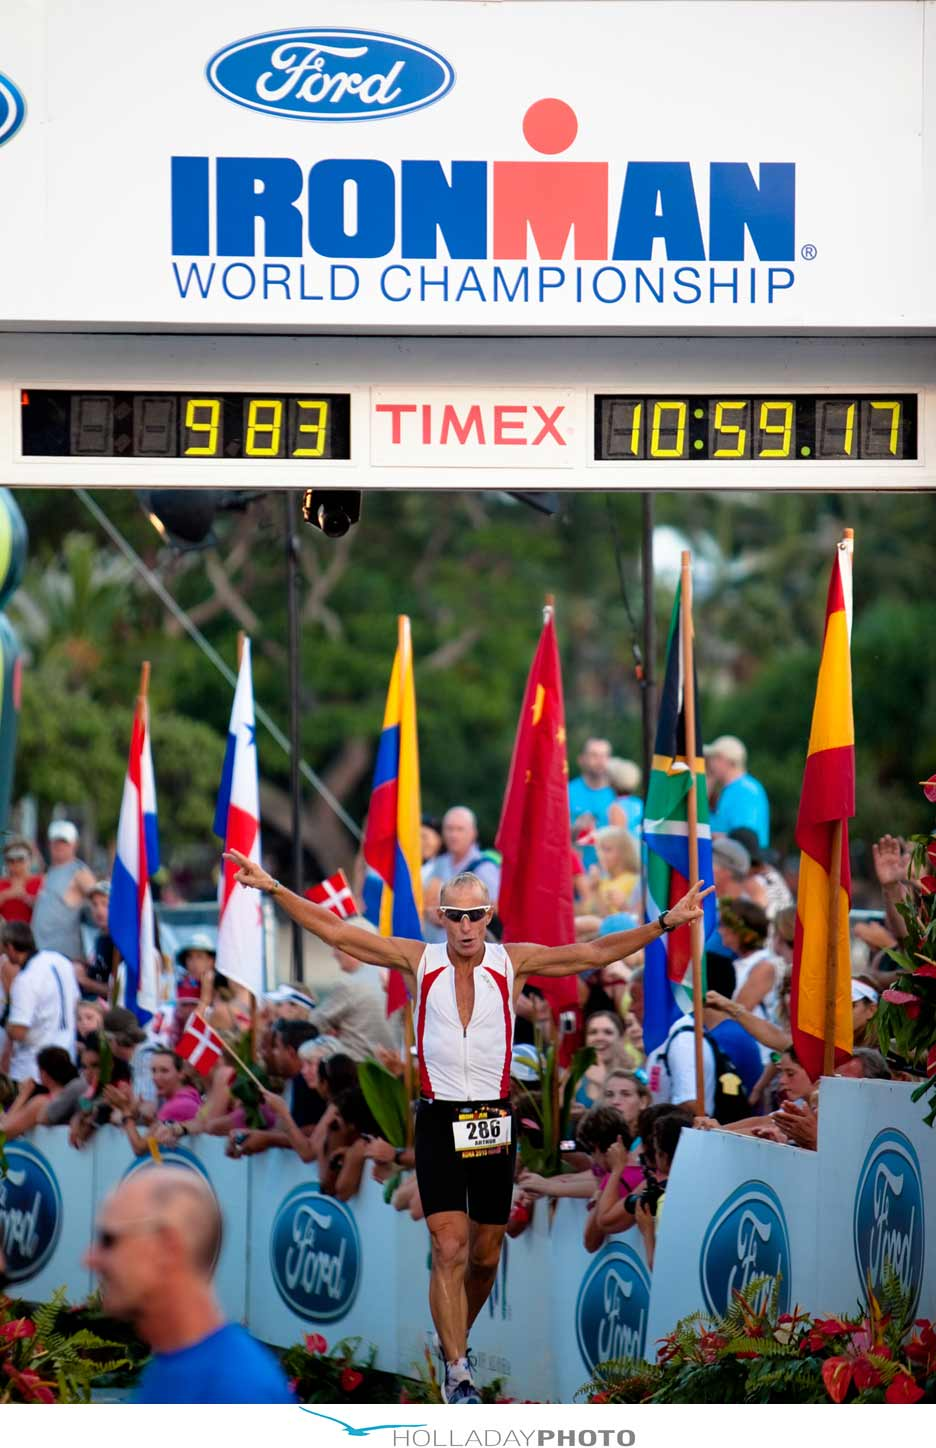 ironman-workd-championship-kona-hawaii